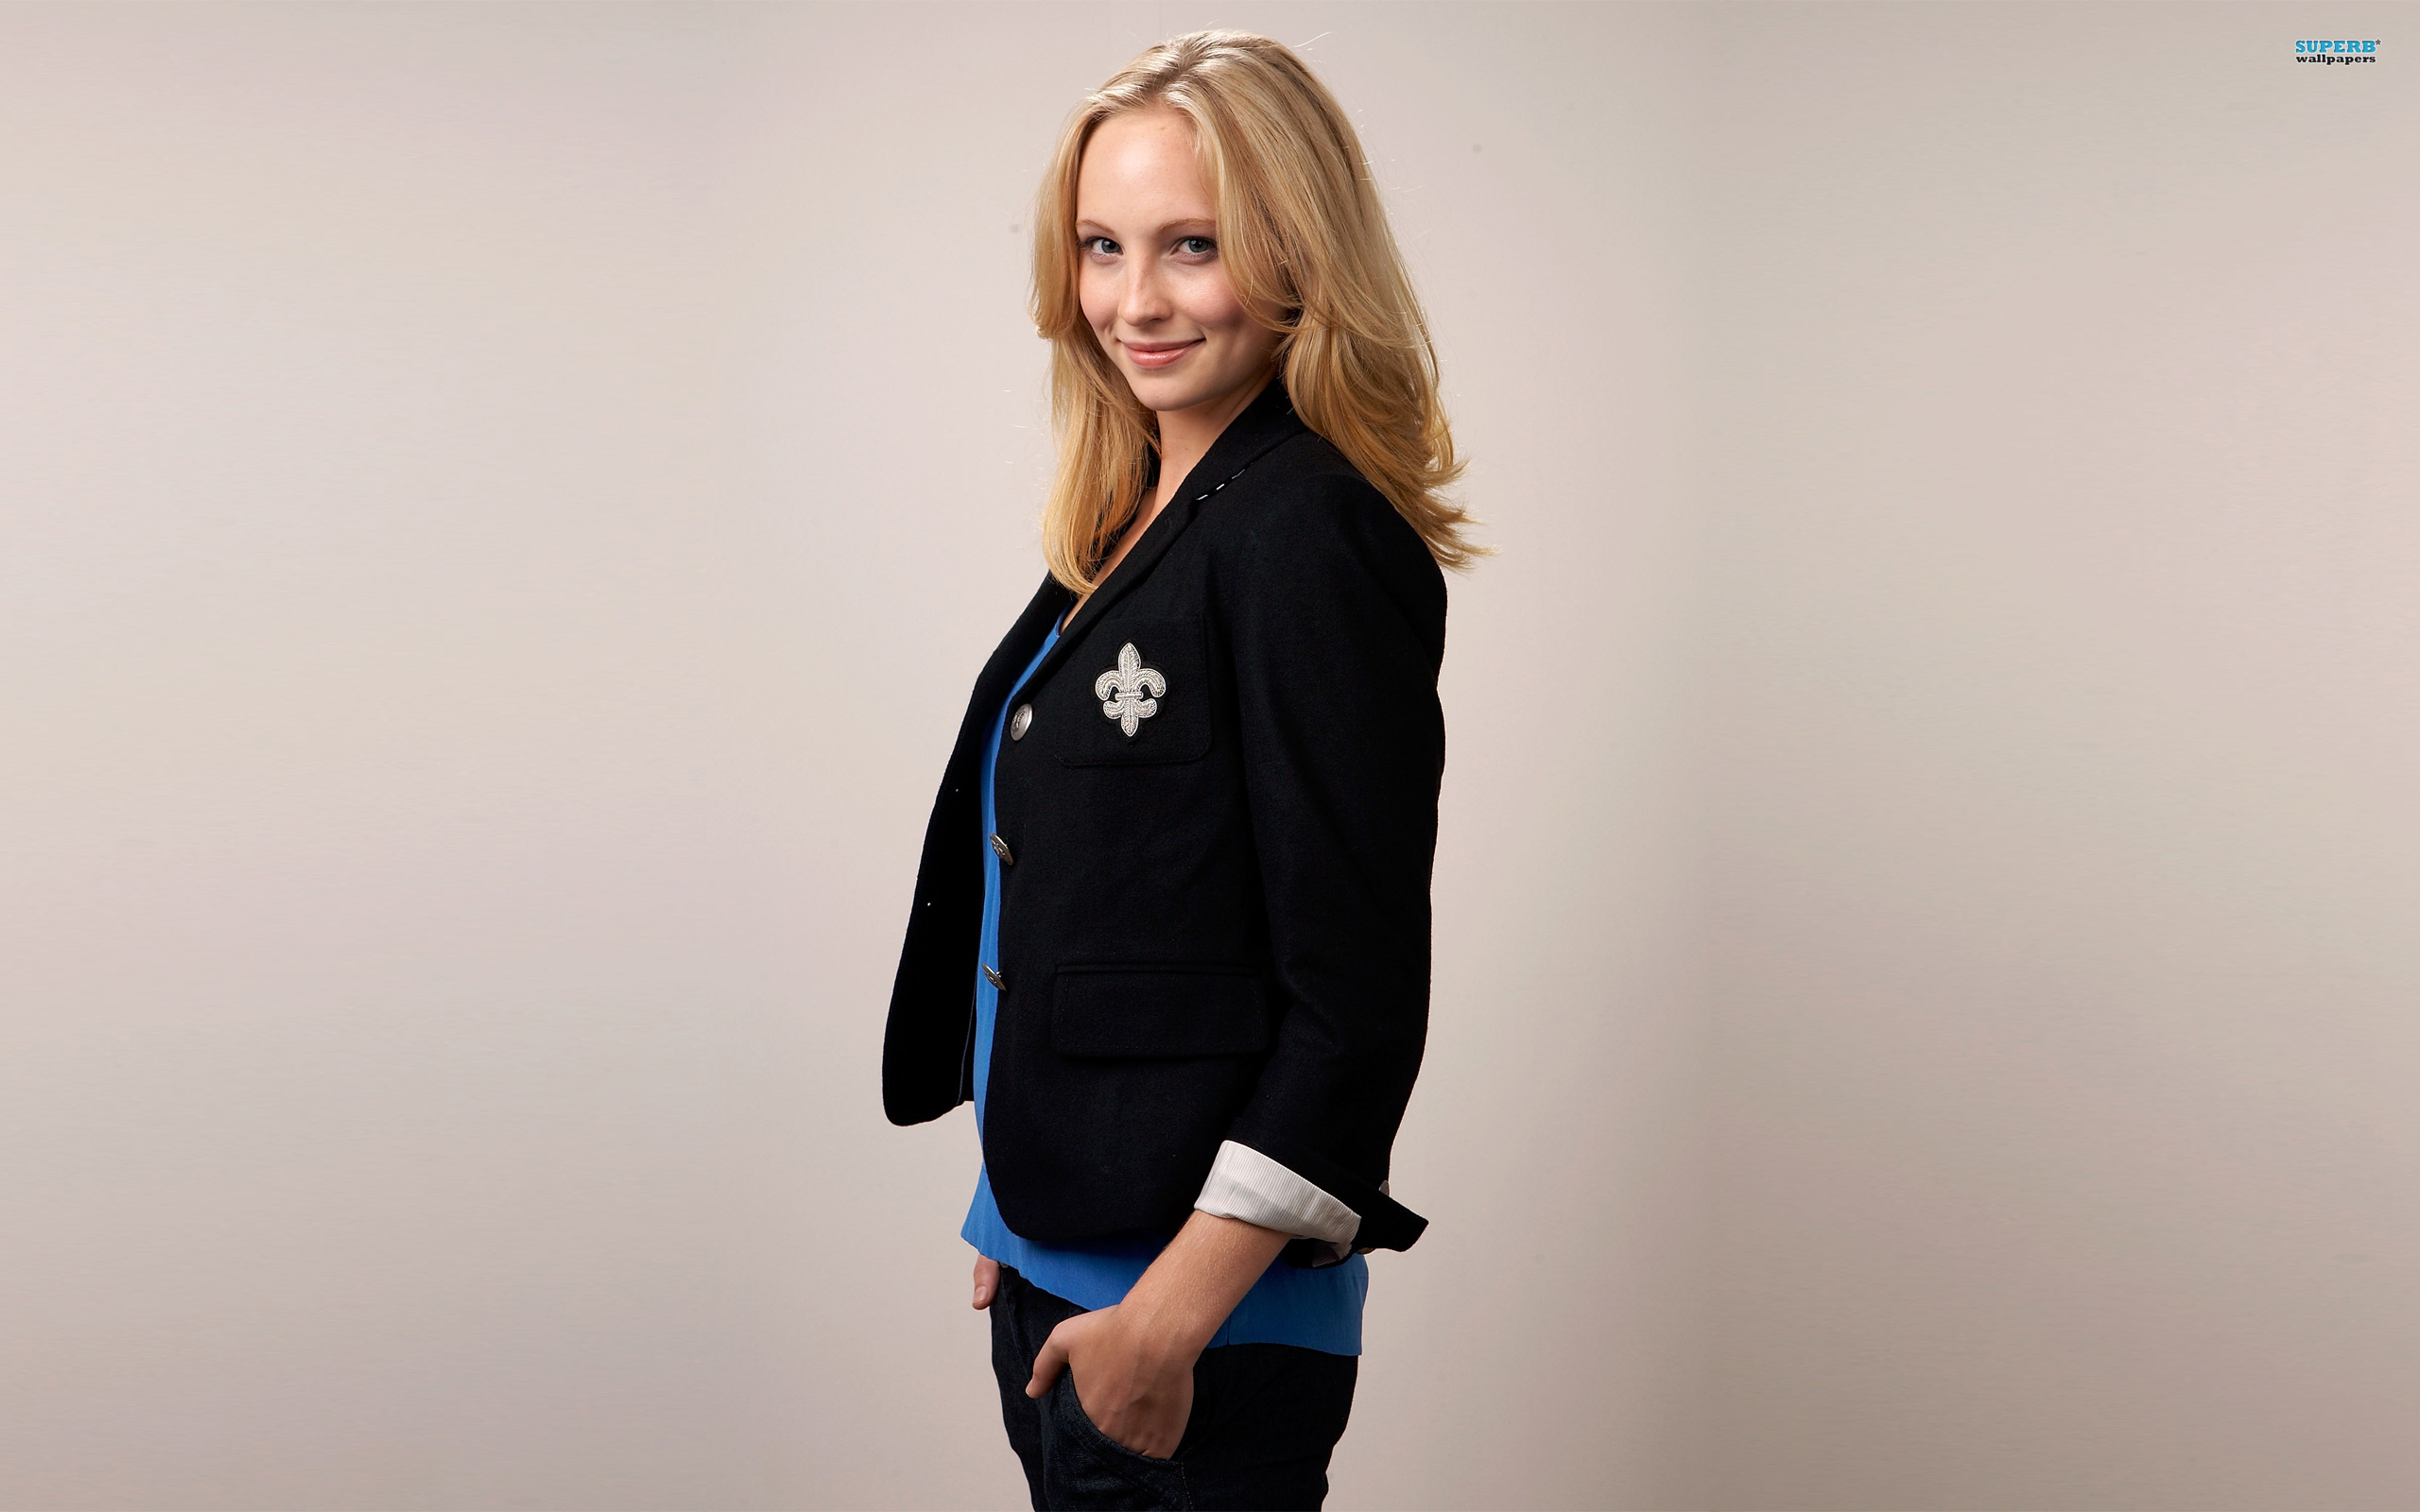 2560x1600 - Candice Accola Wallpapers 32